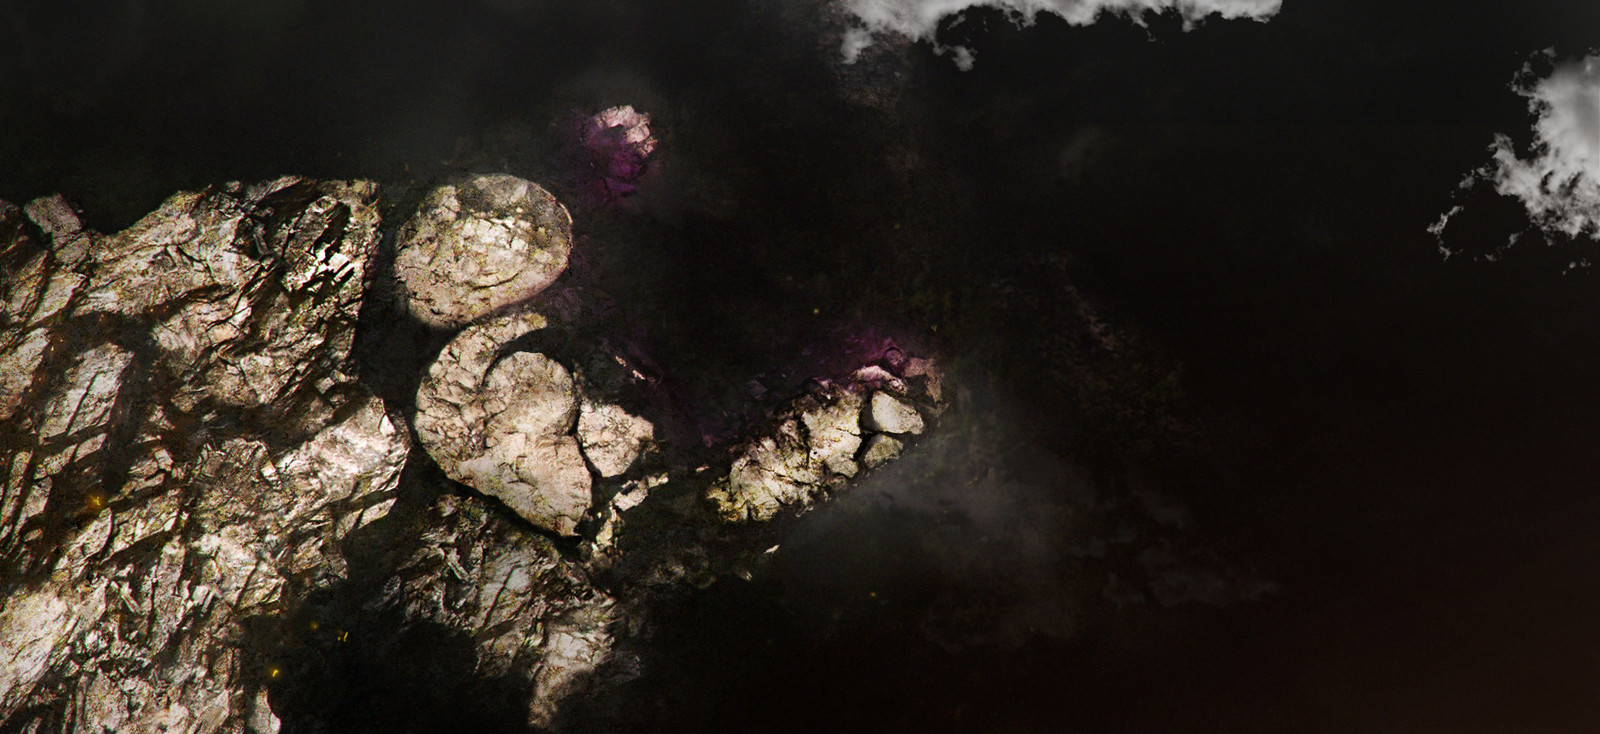 Tower of Corruption - fragment image